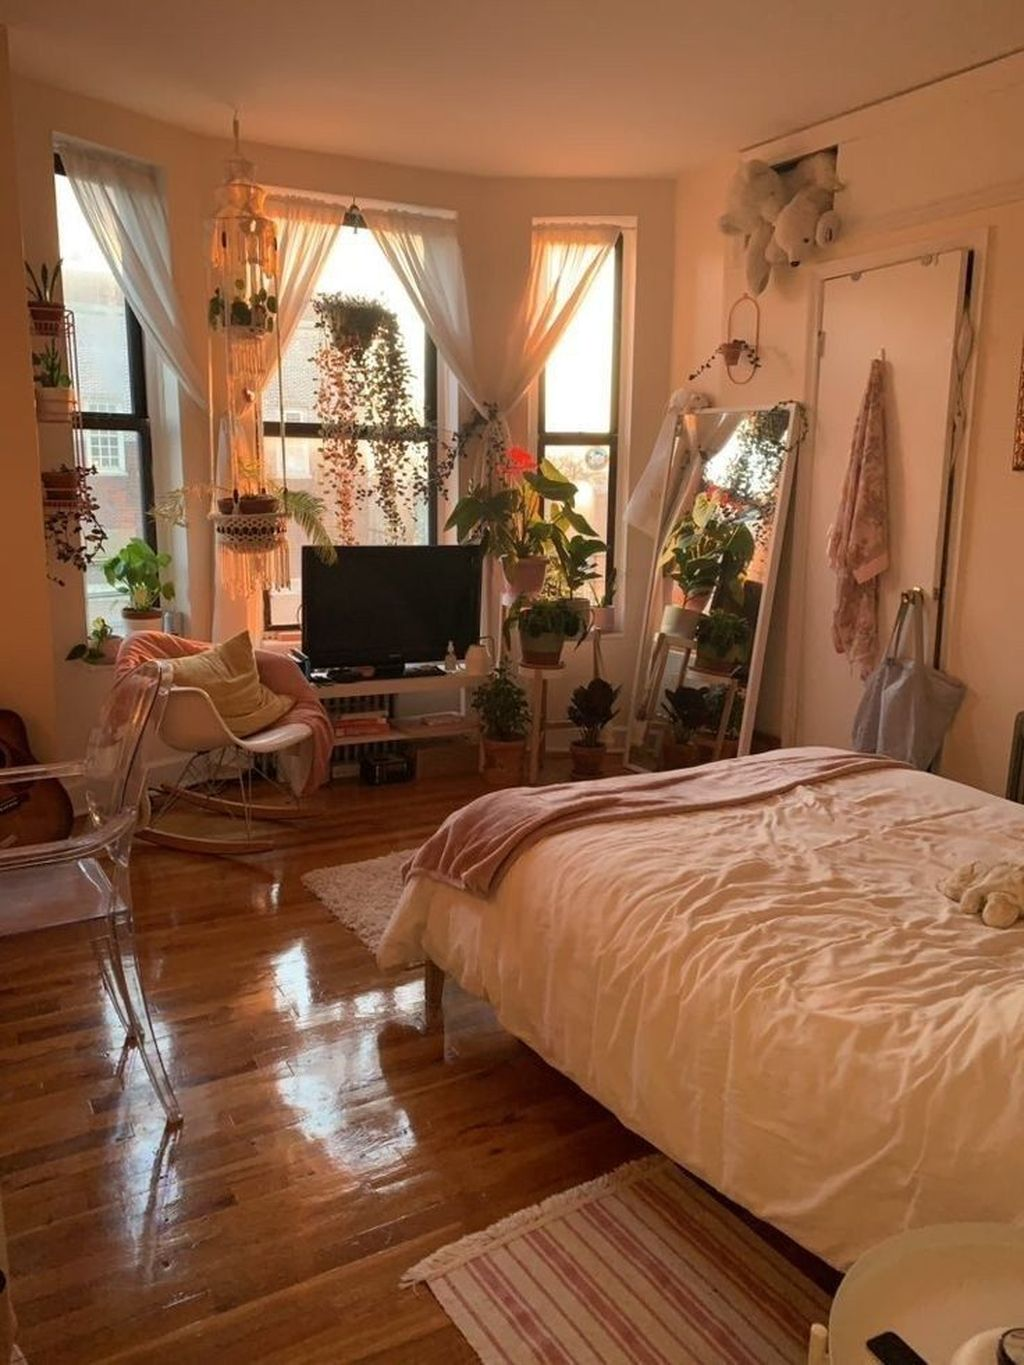 Fascinating Apartment Bedroom Decor Ideas 32